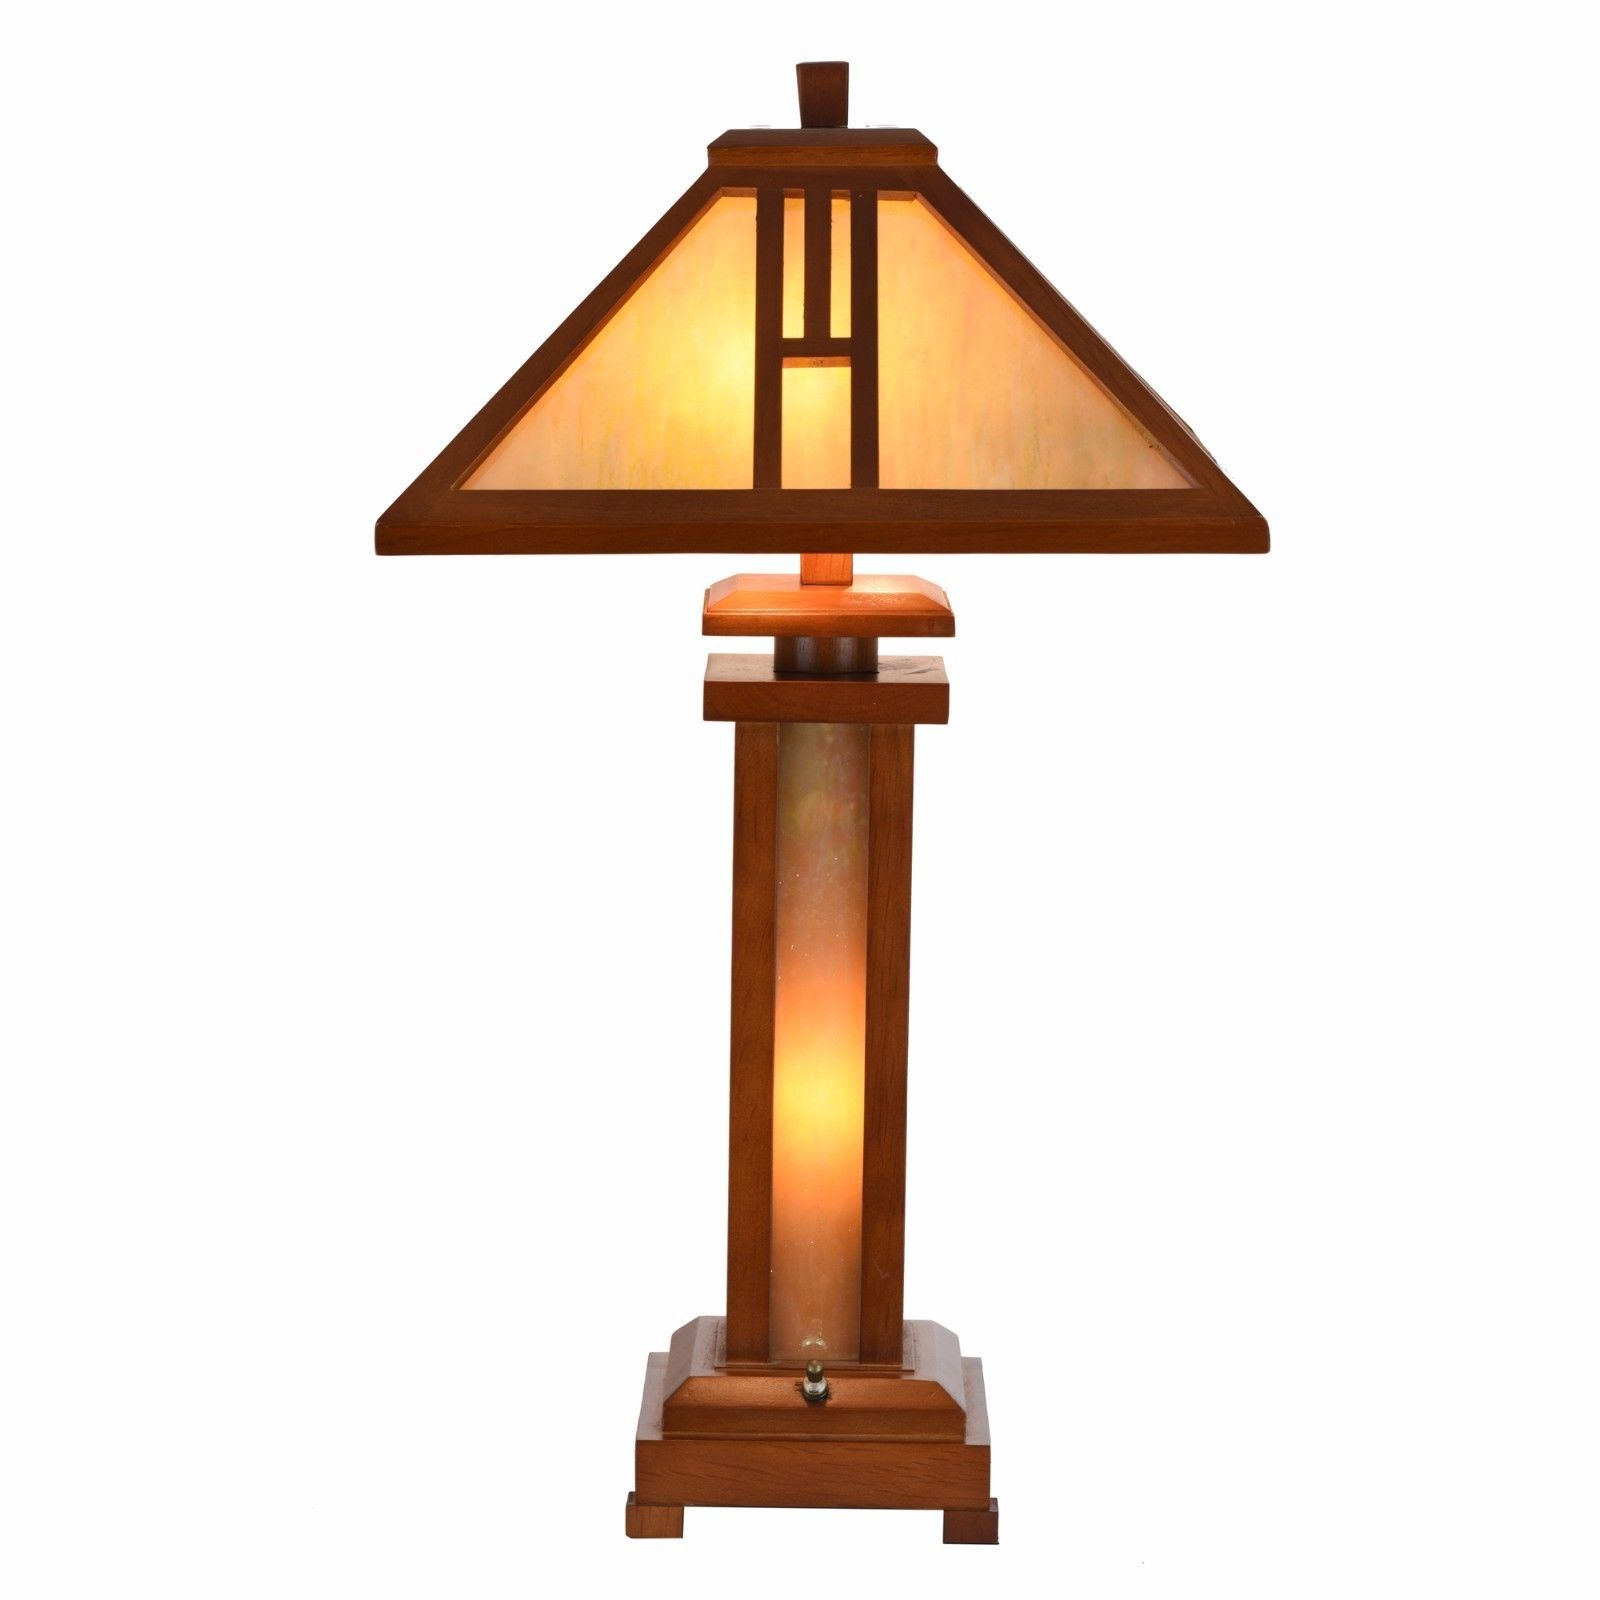 Cloud Mountain Tiffany Style Table Lamp Mission Home Office Décor Desk Lamp